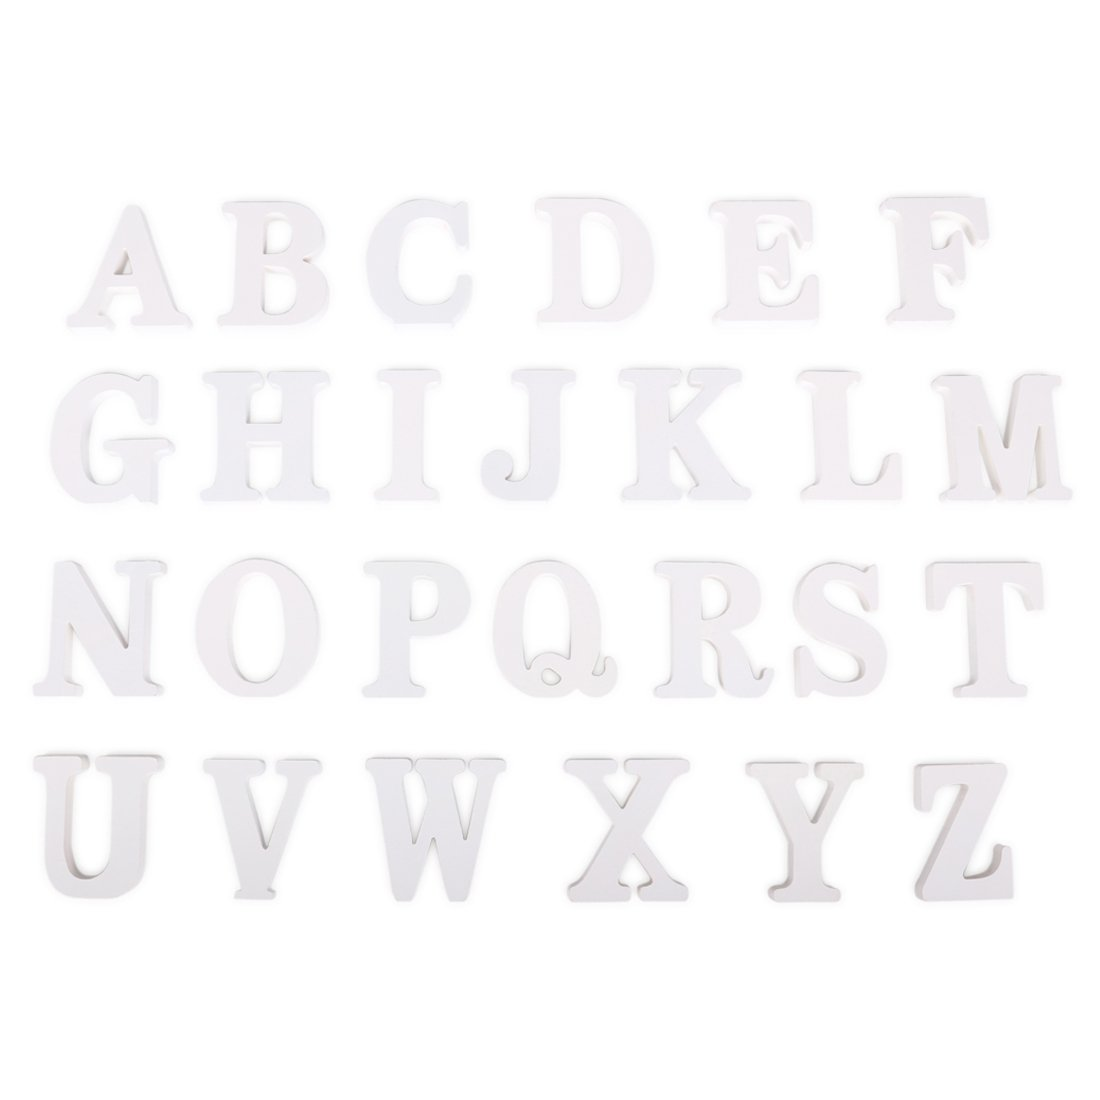 FUT_Forevre Decorative Wooden Letters Hanging Wall 26 Letters Three-Dimensional Wood Alphabet Letters for Baby Name Girls Bedroom Wedding Birthday Party